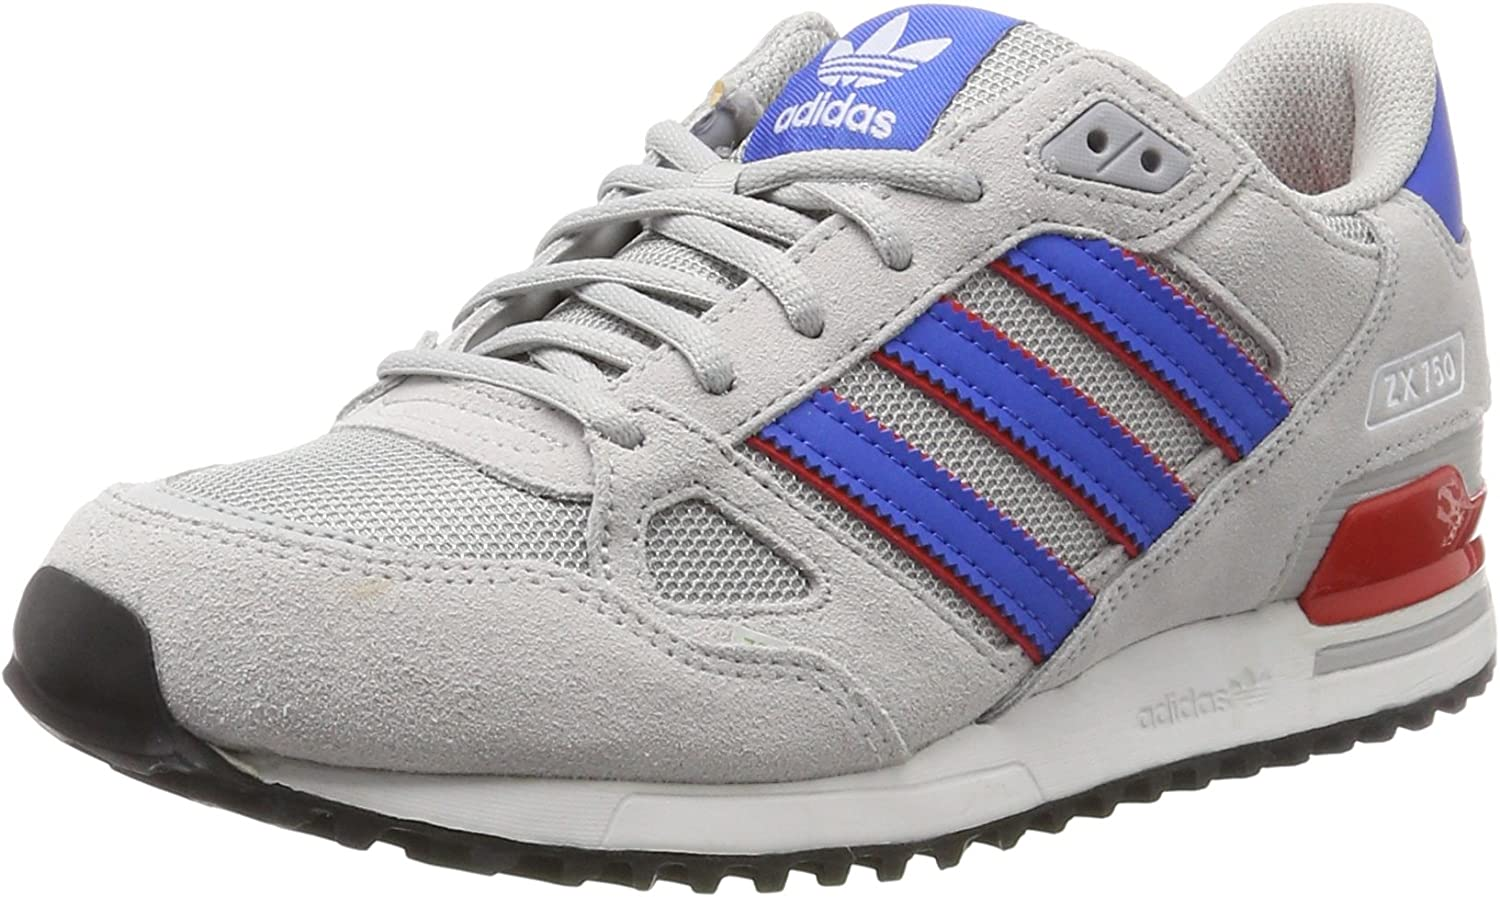 adidas ZX 750 BA7677 Mens Trainers